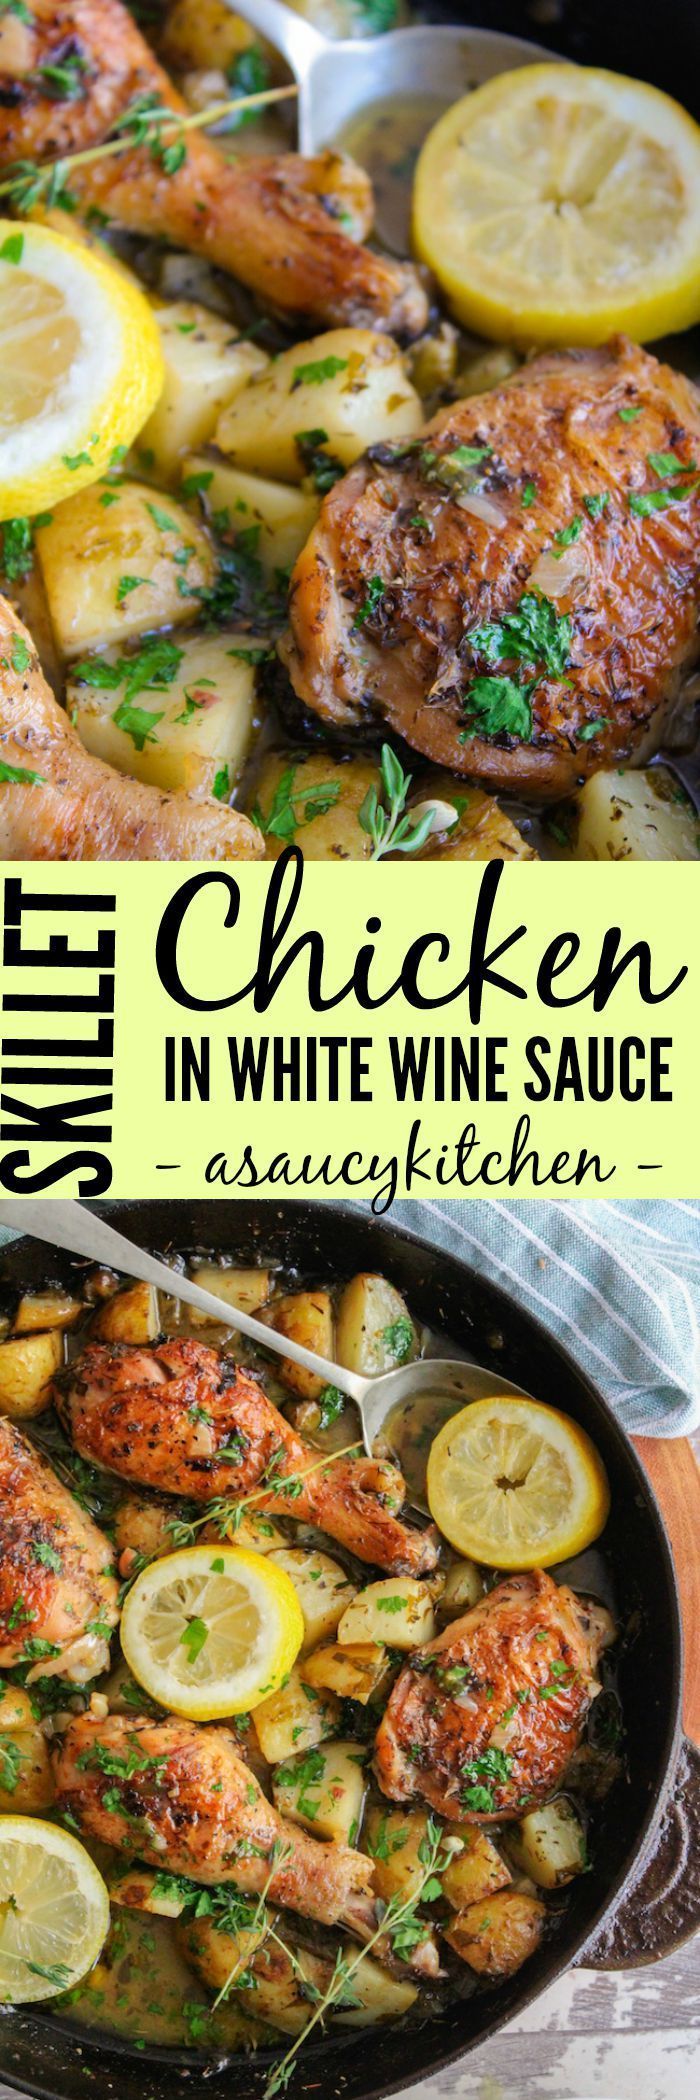 Easy, one pan crispy skillet chicken bathed in a parsley and thyme white wine sauce. So on lazy days I live for simple skillet chicken in white wine sauce.